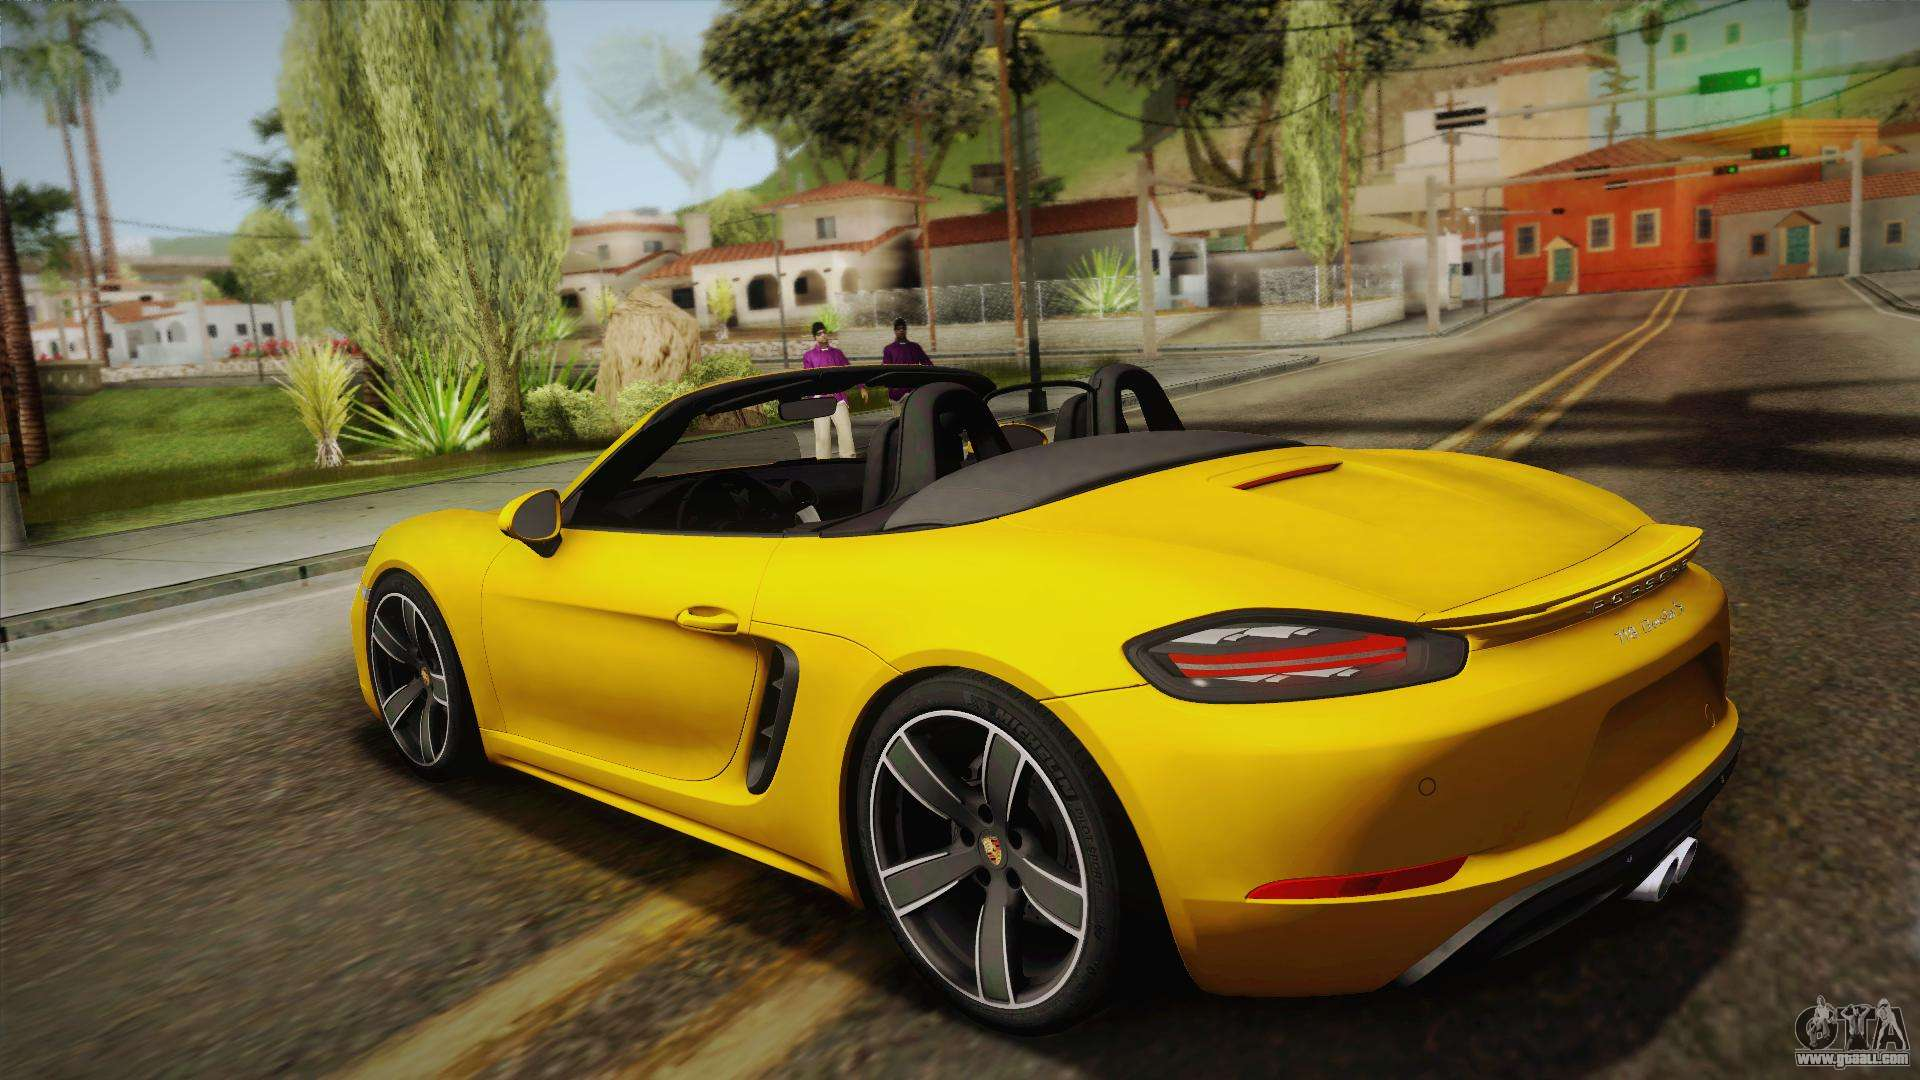 Gta Bosna: Gta Bosna Download